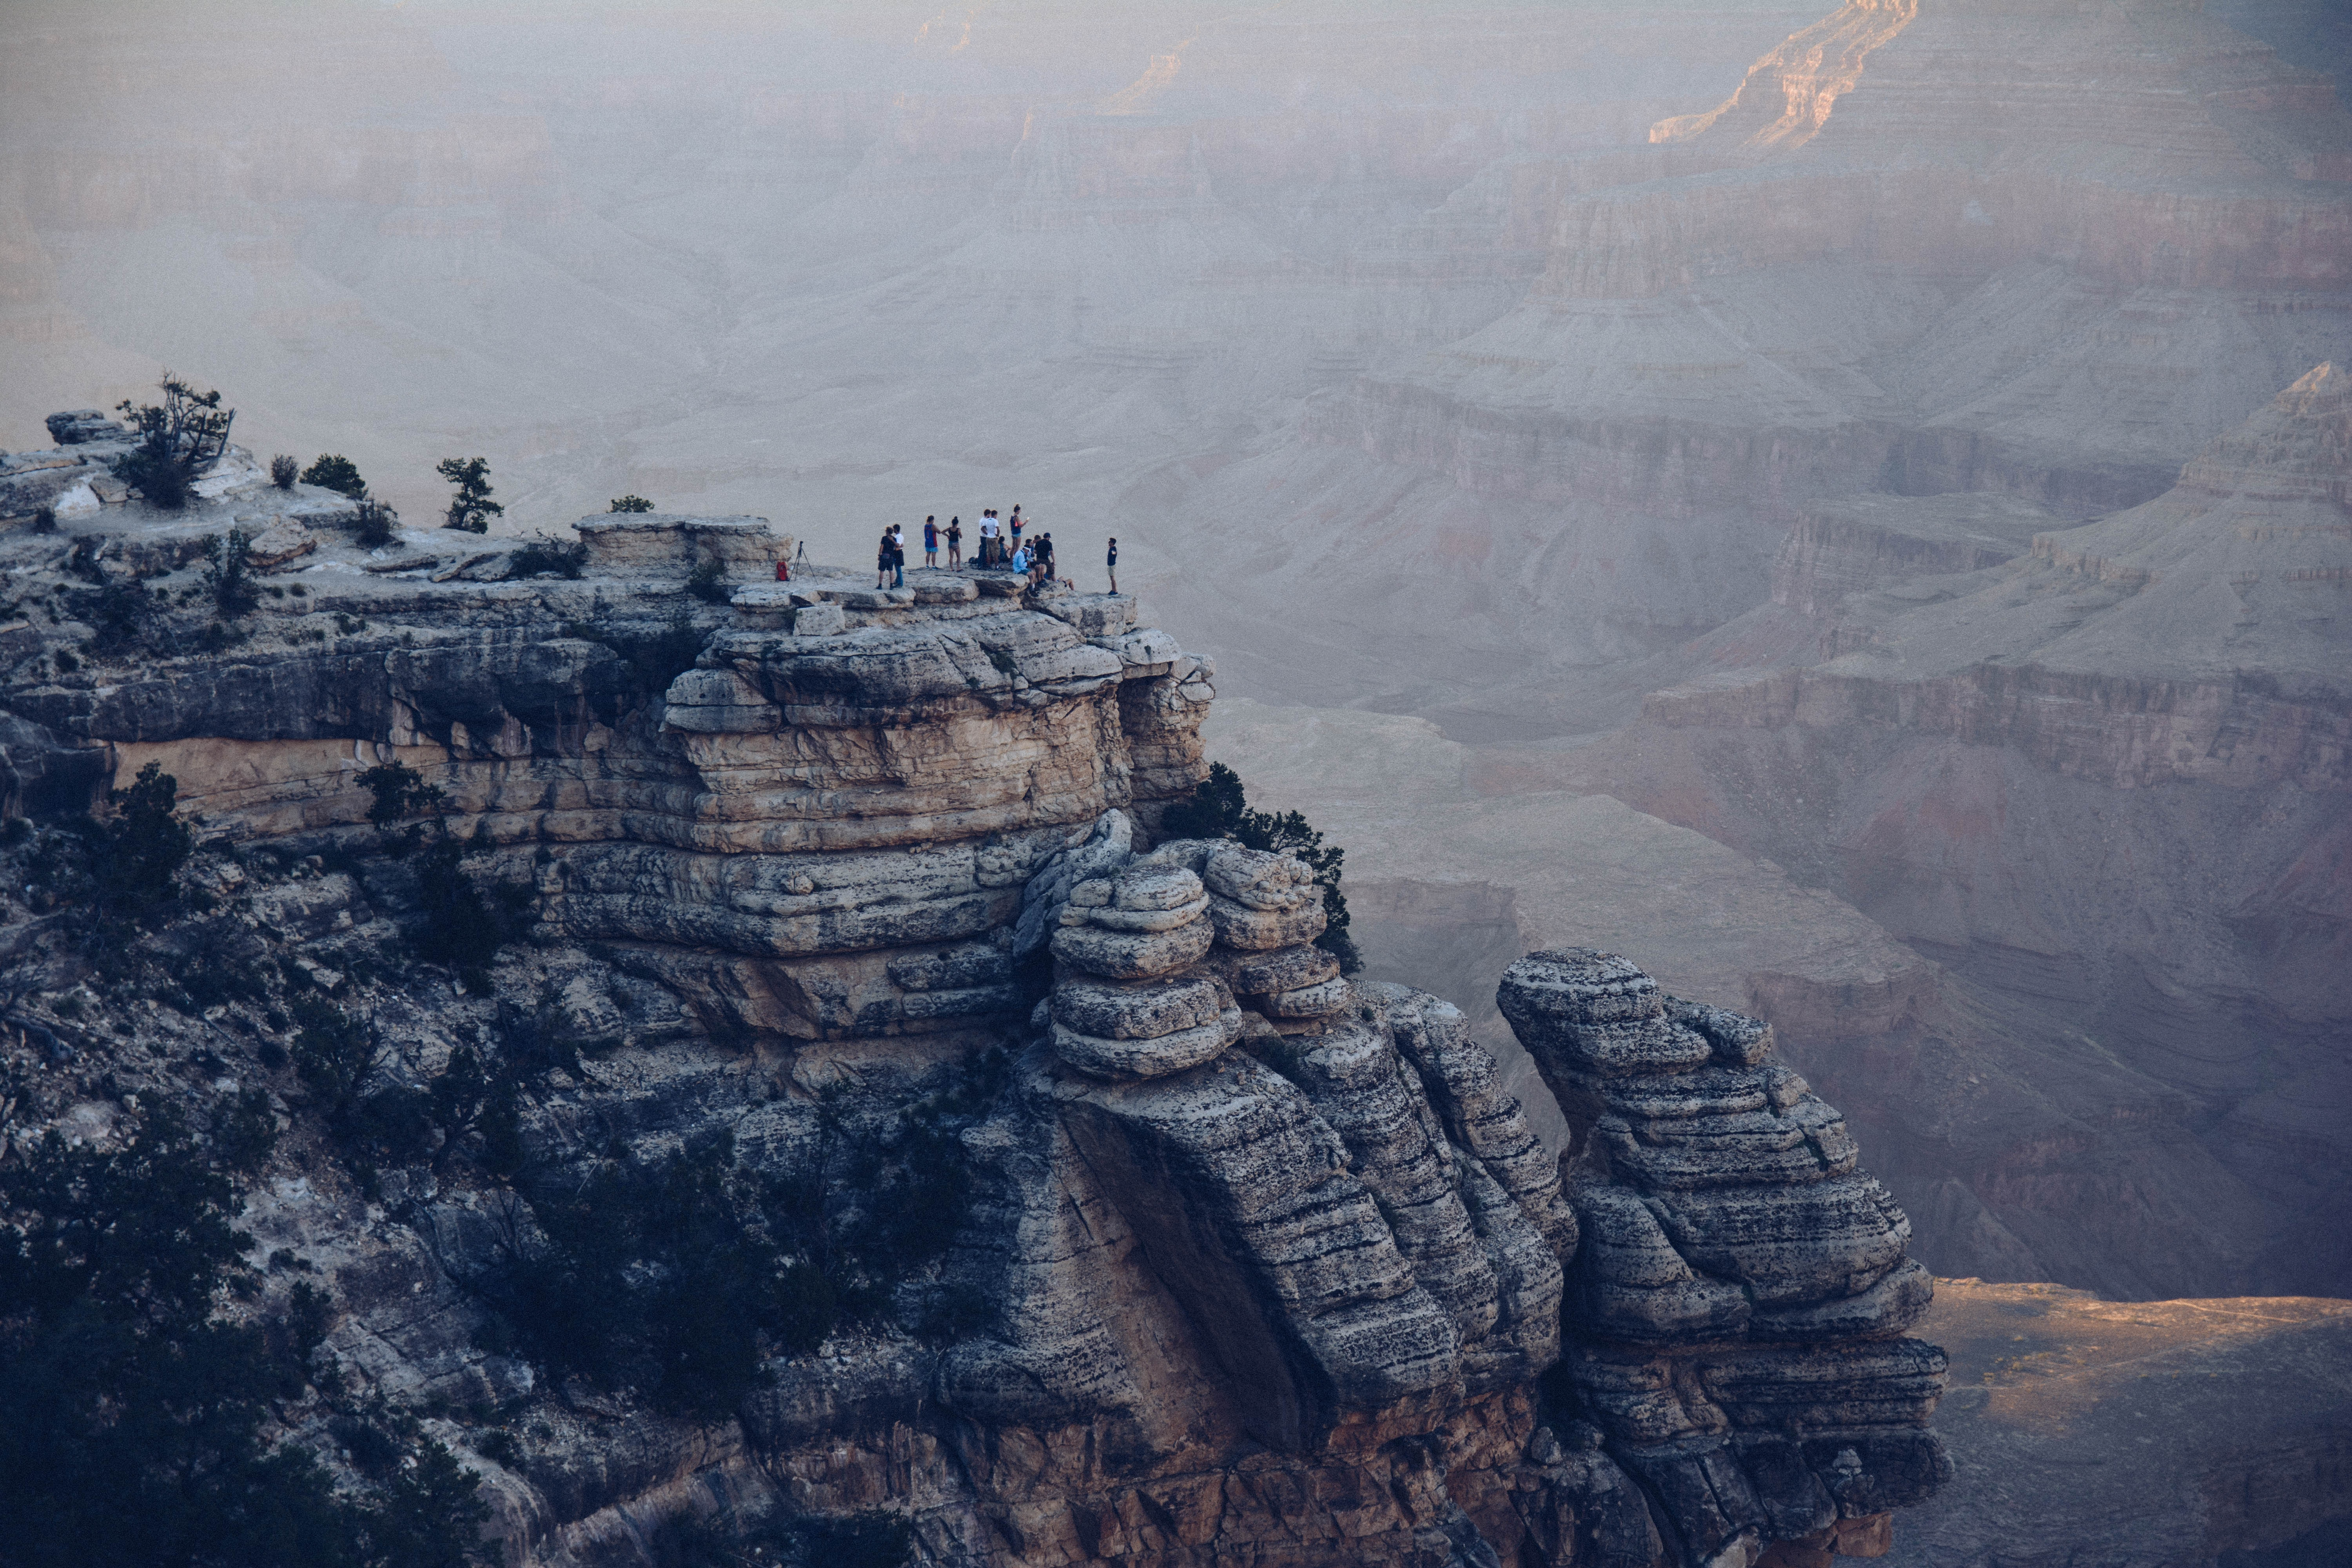 Tourists need to exercise caution when visiting national parks, as most employees are absent, and unable to assist guests.